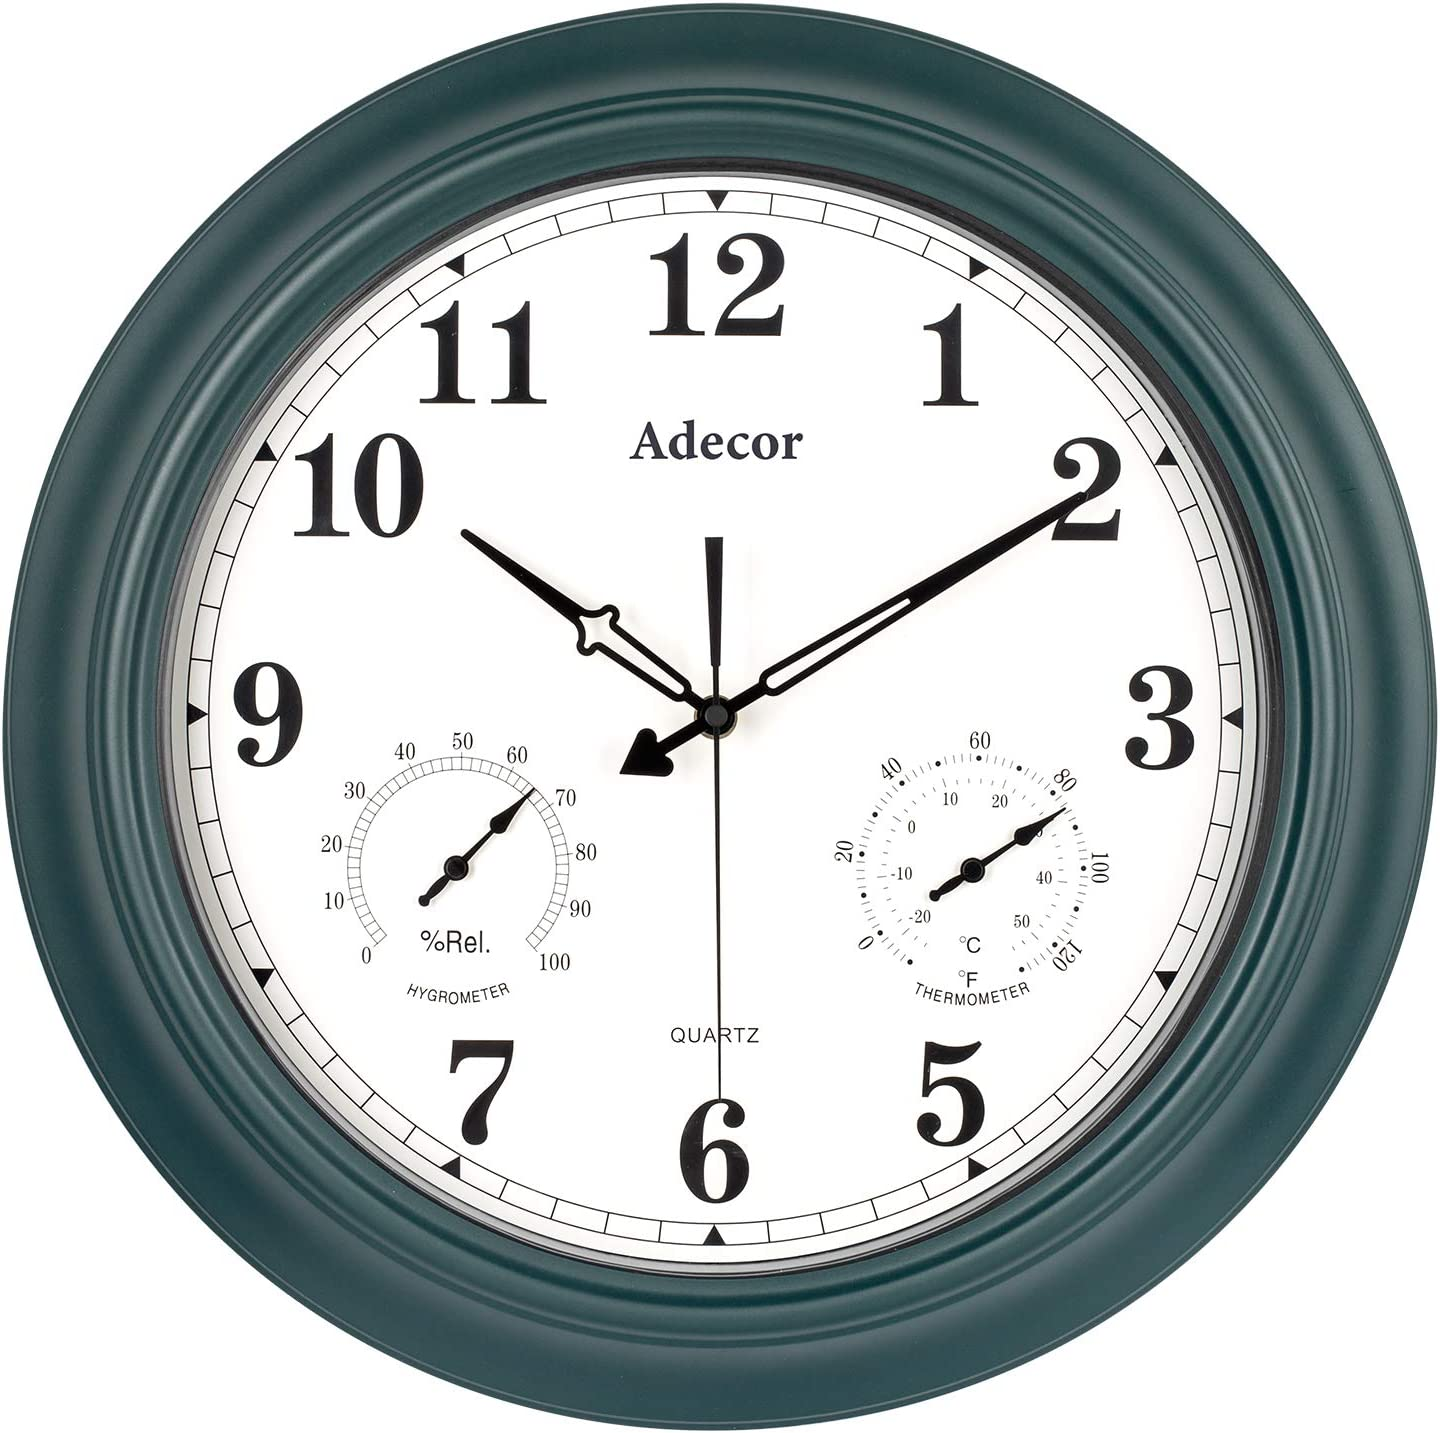 Adecor Waterproof Outdoor Clock, Metal Wall Clocks with Thermometer & Hygrometer Combo, Silent Battery Operated Large Clock, Easy Read for Garden/Patio/Pool/Fence/Bathroom, 18 inch, Pine Green